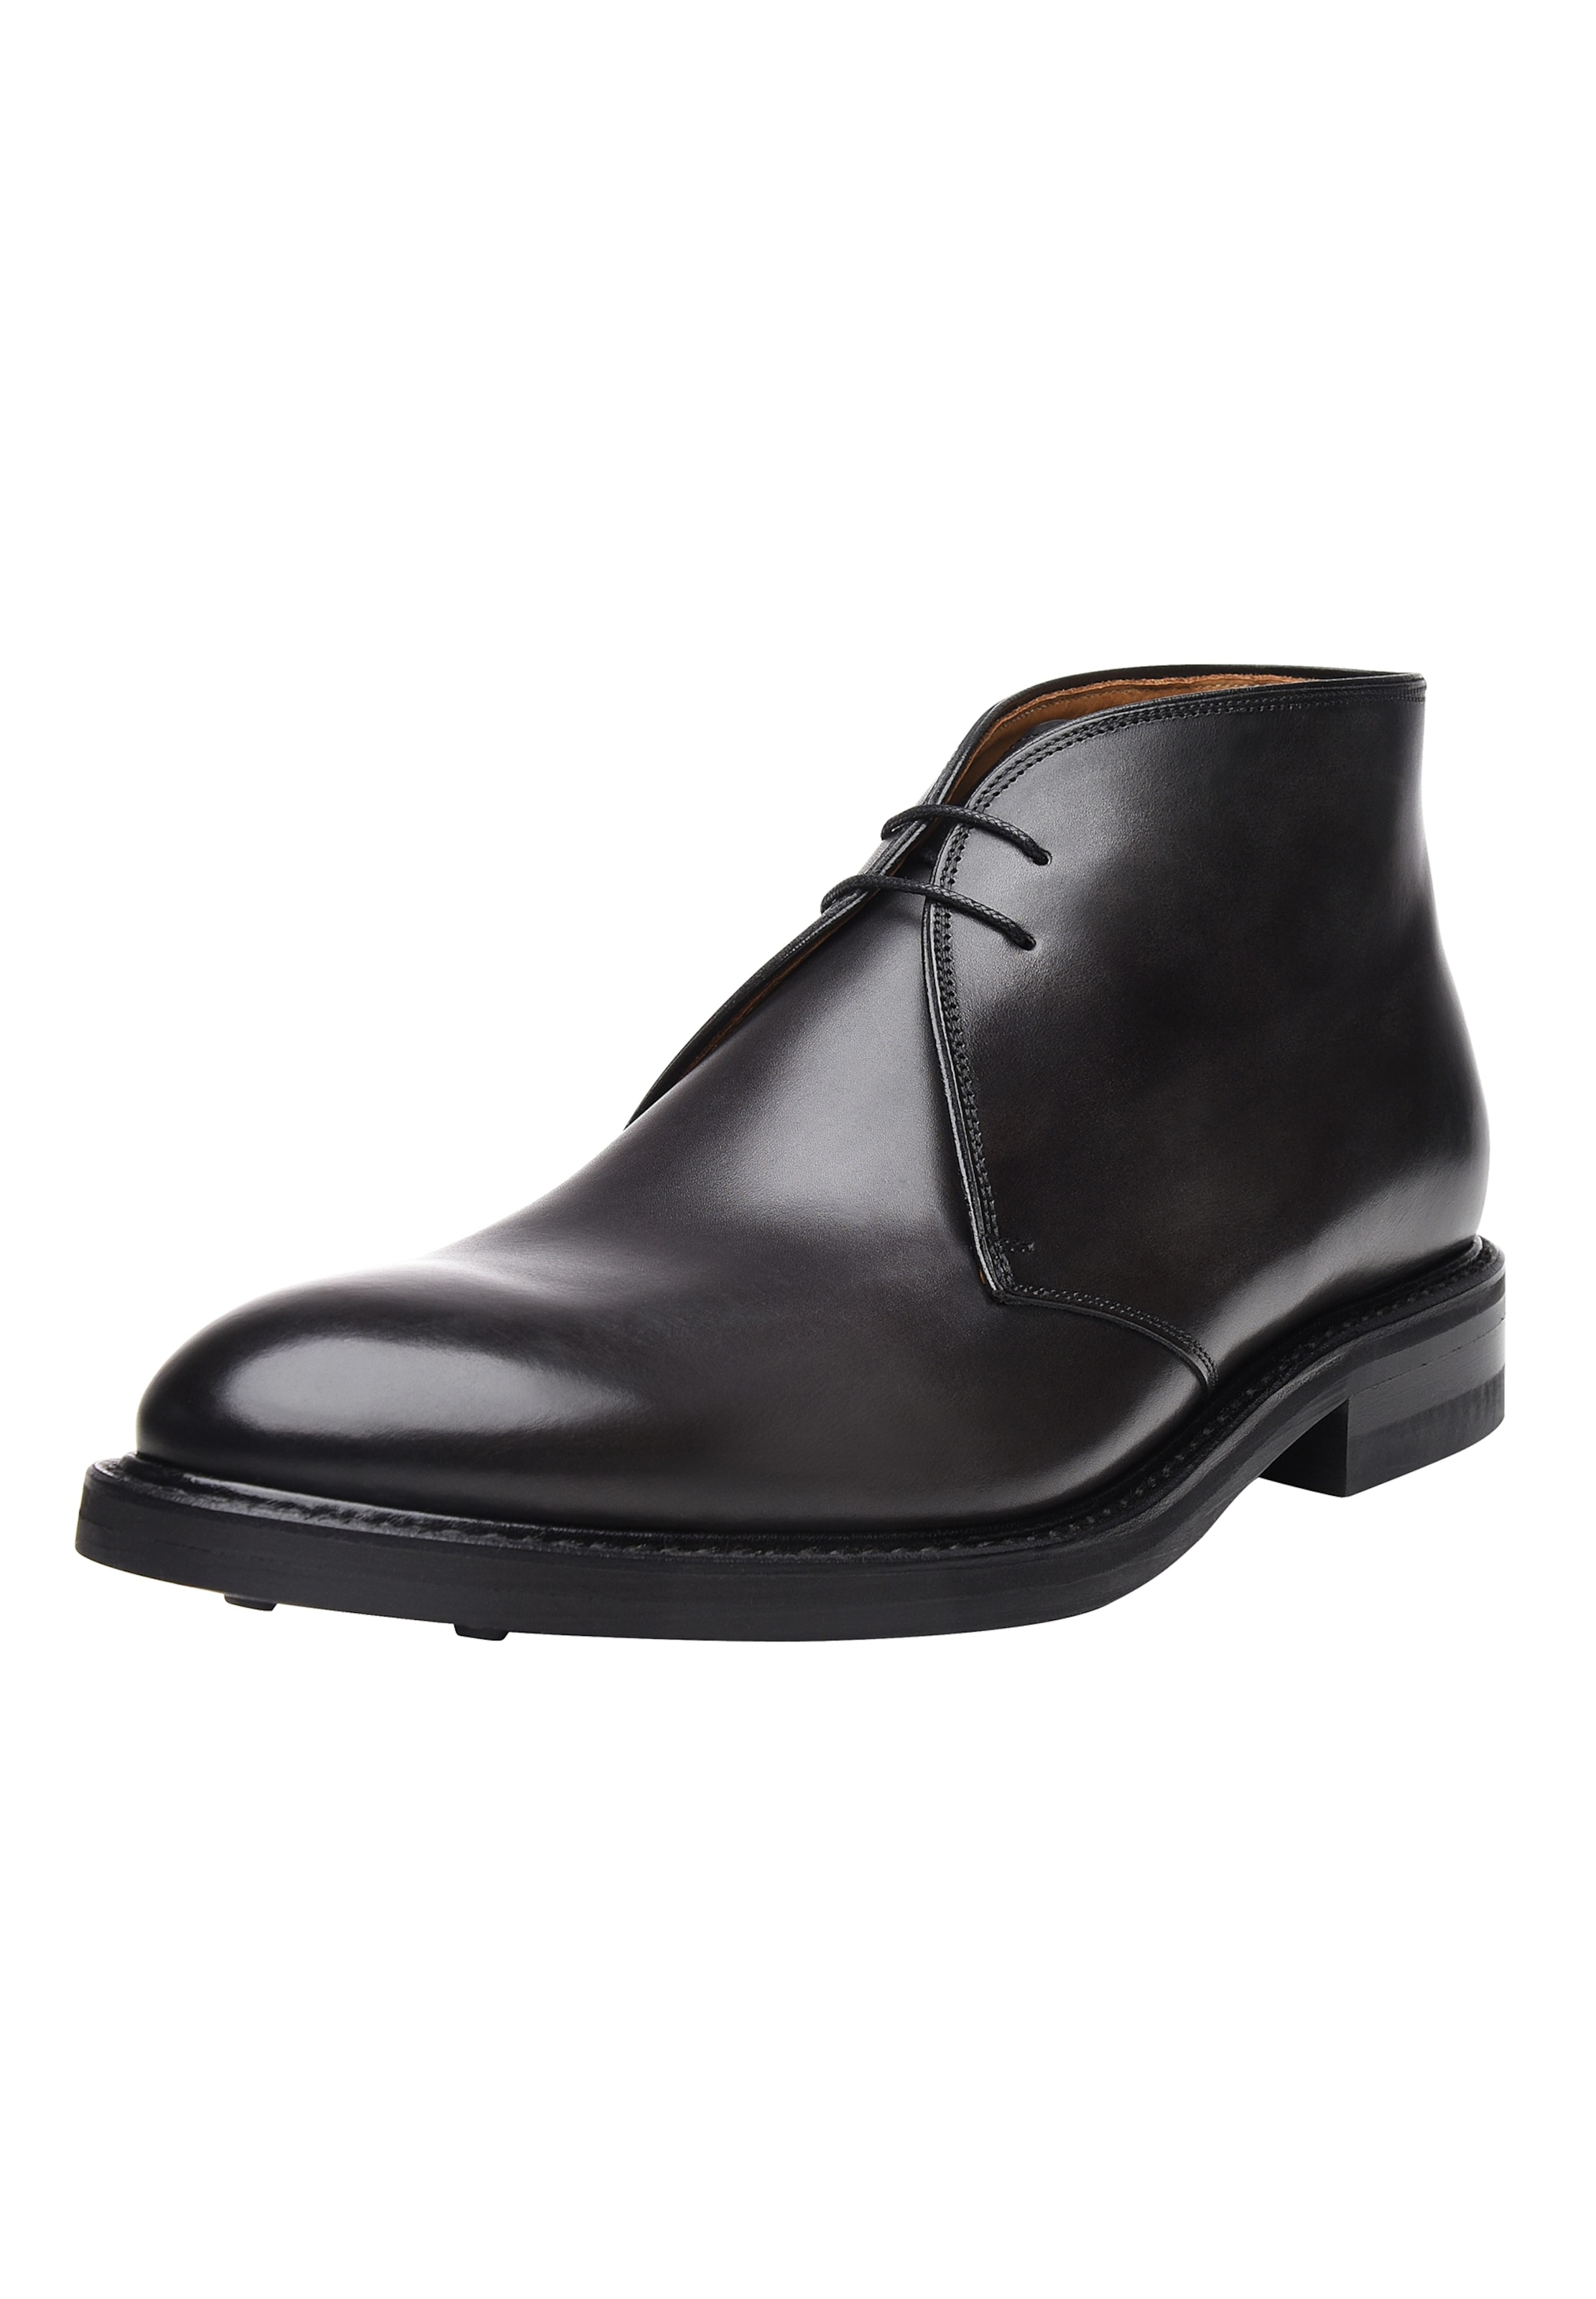 Boots Shoepassion Schwarz In 'no6615' Chukka 4LjR5A